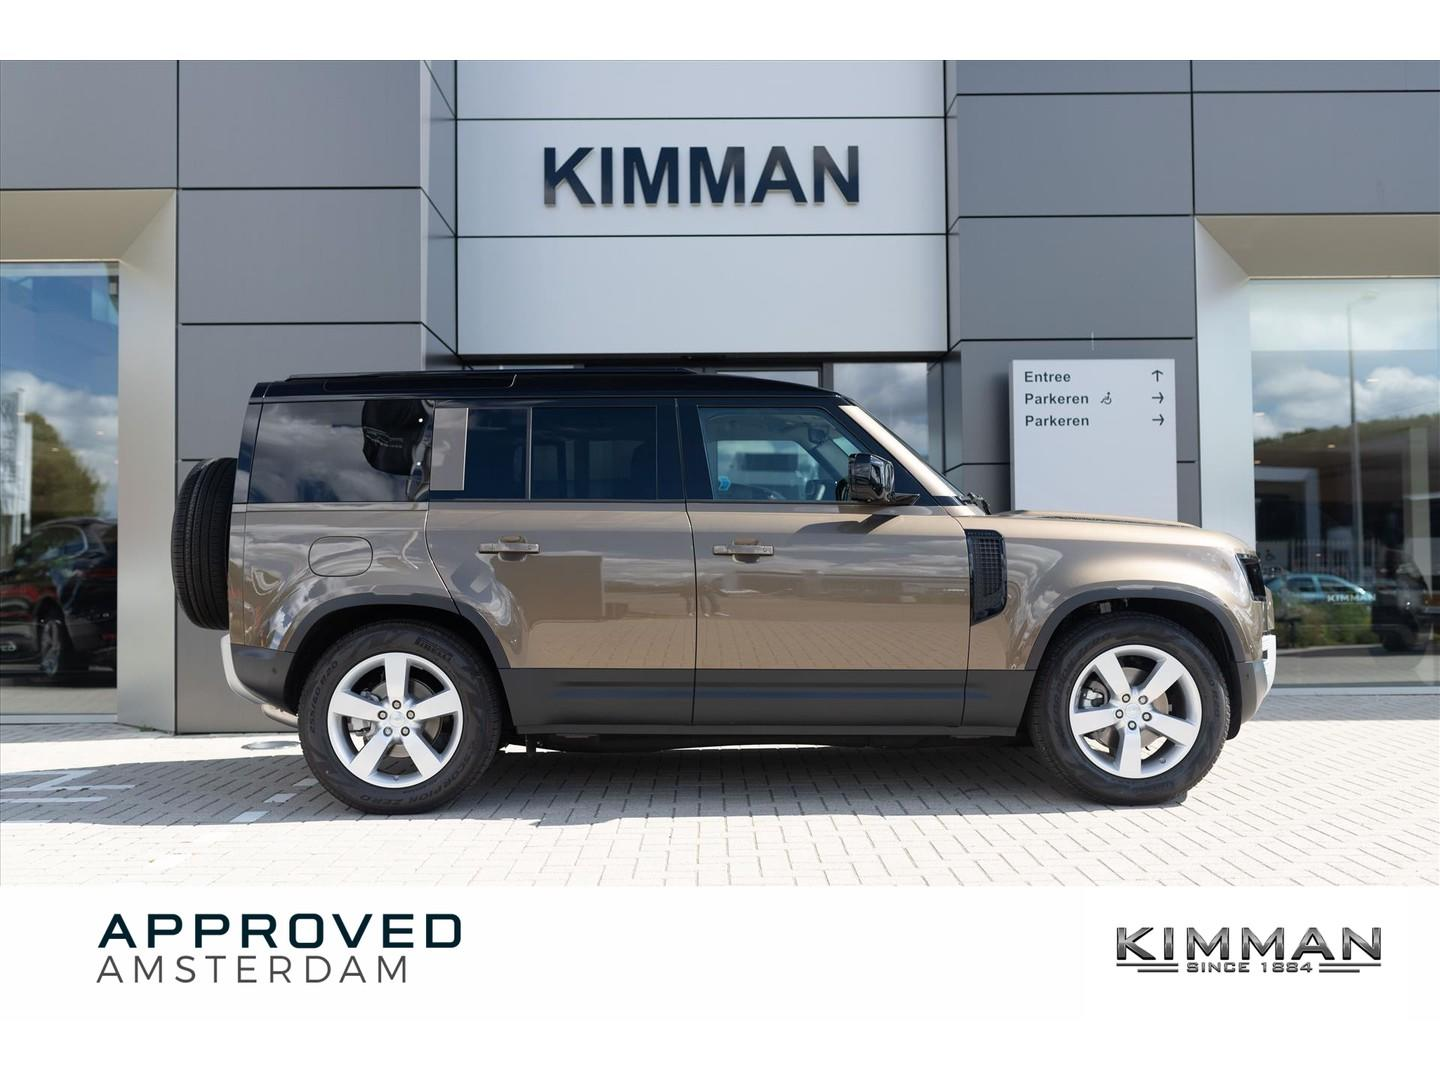 Land rover Defender 110 d240 *240 pk* 7 seater pack first edition